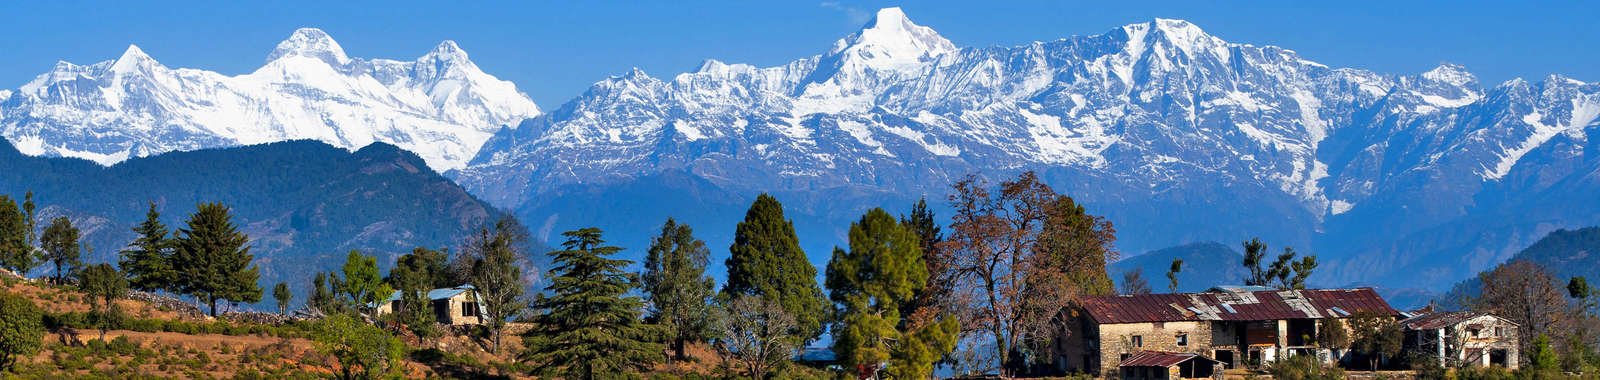 Enjoy panoramic views of Himalayan villages on a luxury tailor-made holiday to north India